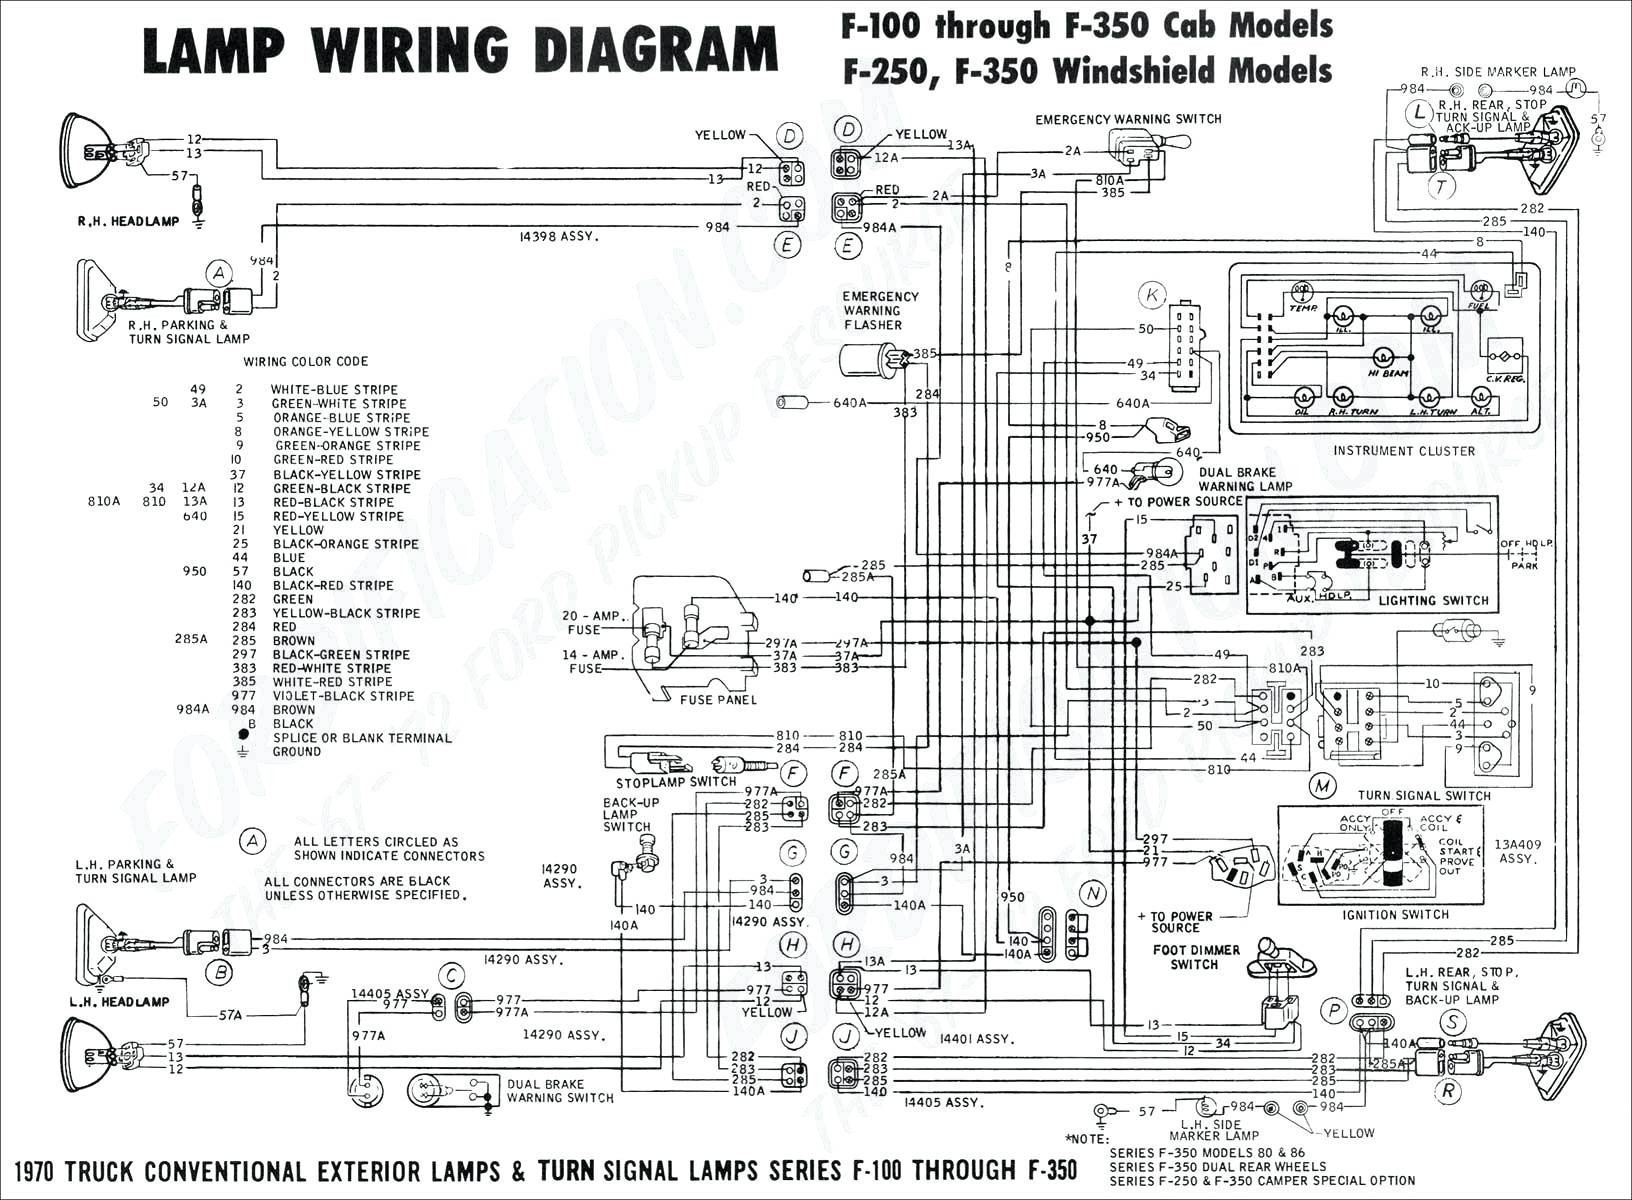 wiring diagram for case 580 ck backhoe basic electrical turn signal and hazard light wiring diagram wiring diagram for indicators wiring